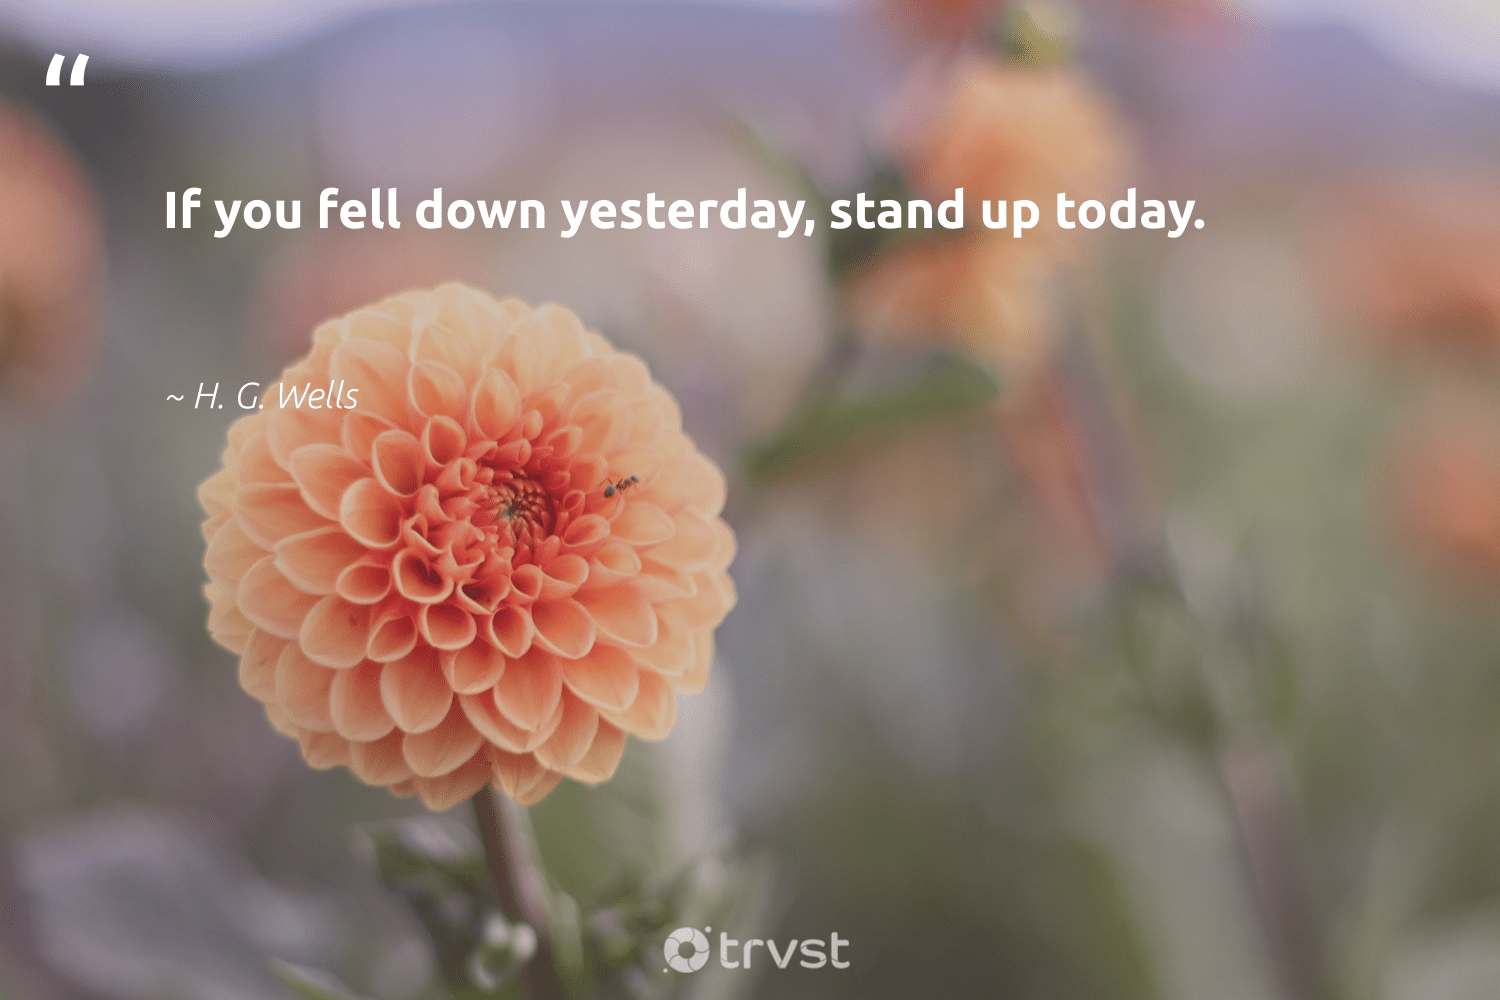 """If you fell down yesterday, stand up today.""  - H. G. Wells #trvst #quotes #softskills #dogood #futureofwork #gogreen #nevergiveup #thinkgreen #begreat #impact #ecoconscious #bethechange"